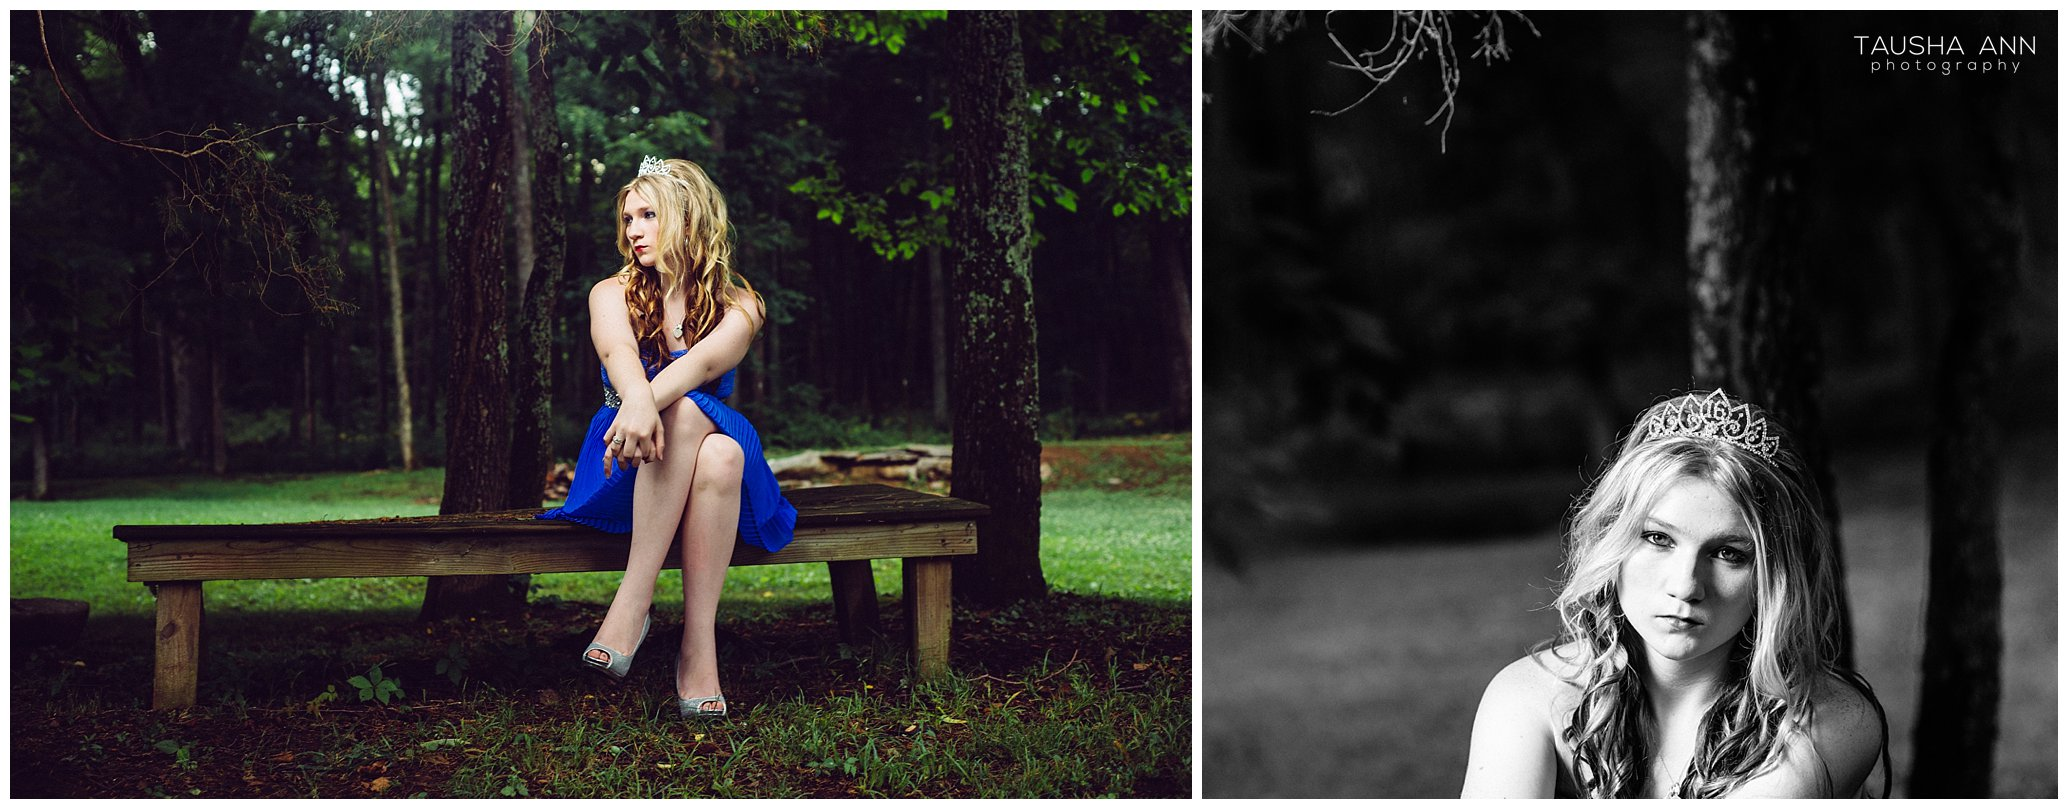 Sammie's_Sweet_16_Duck_Pond_Farm_Mt_Juliet_Tausha_Ann_Photography_Model_Nashville_Franklin_Spinning_Blue_Dress_Tiara_Sitting_On_Bench_Tree_Gorgeous